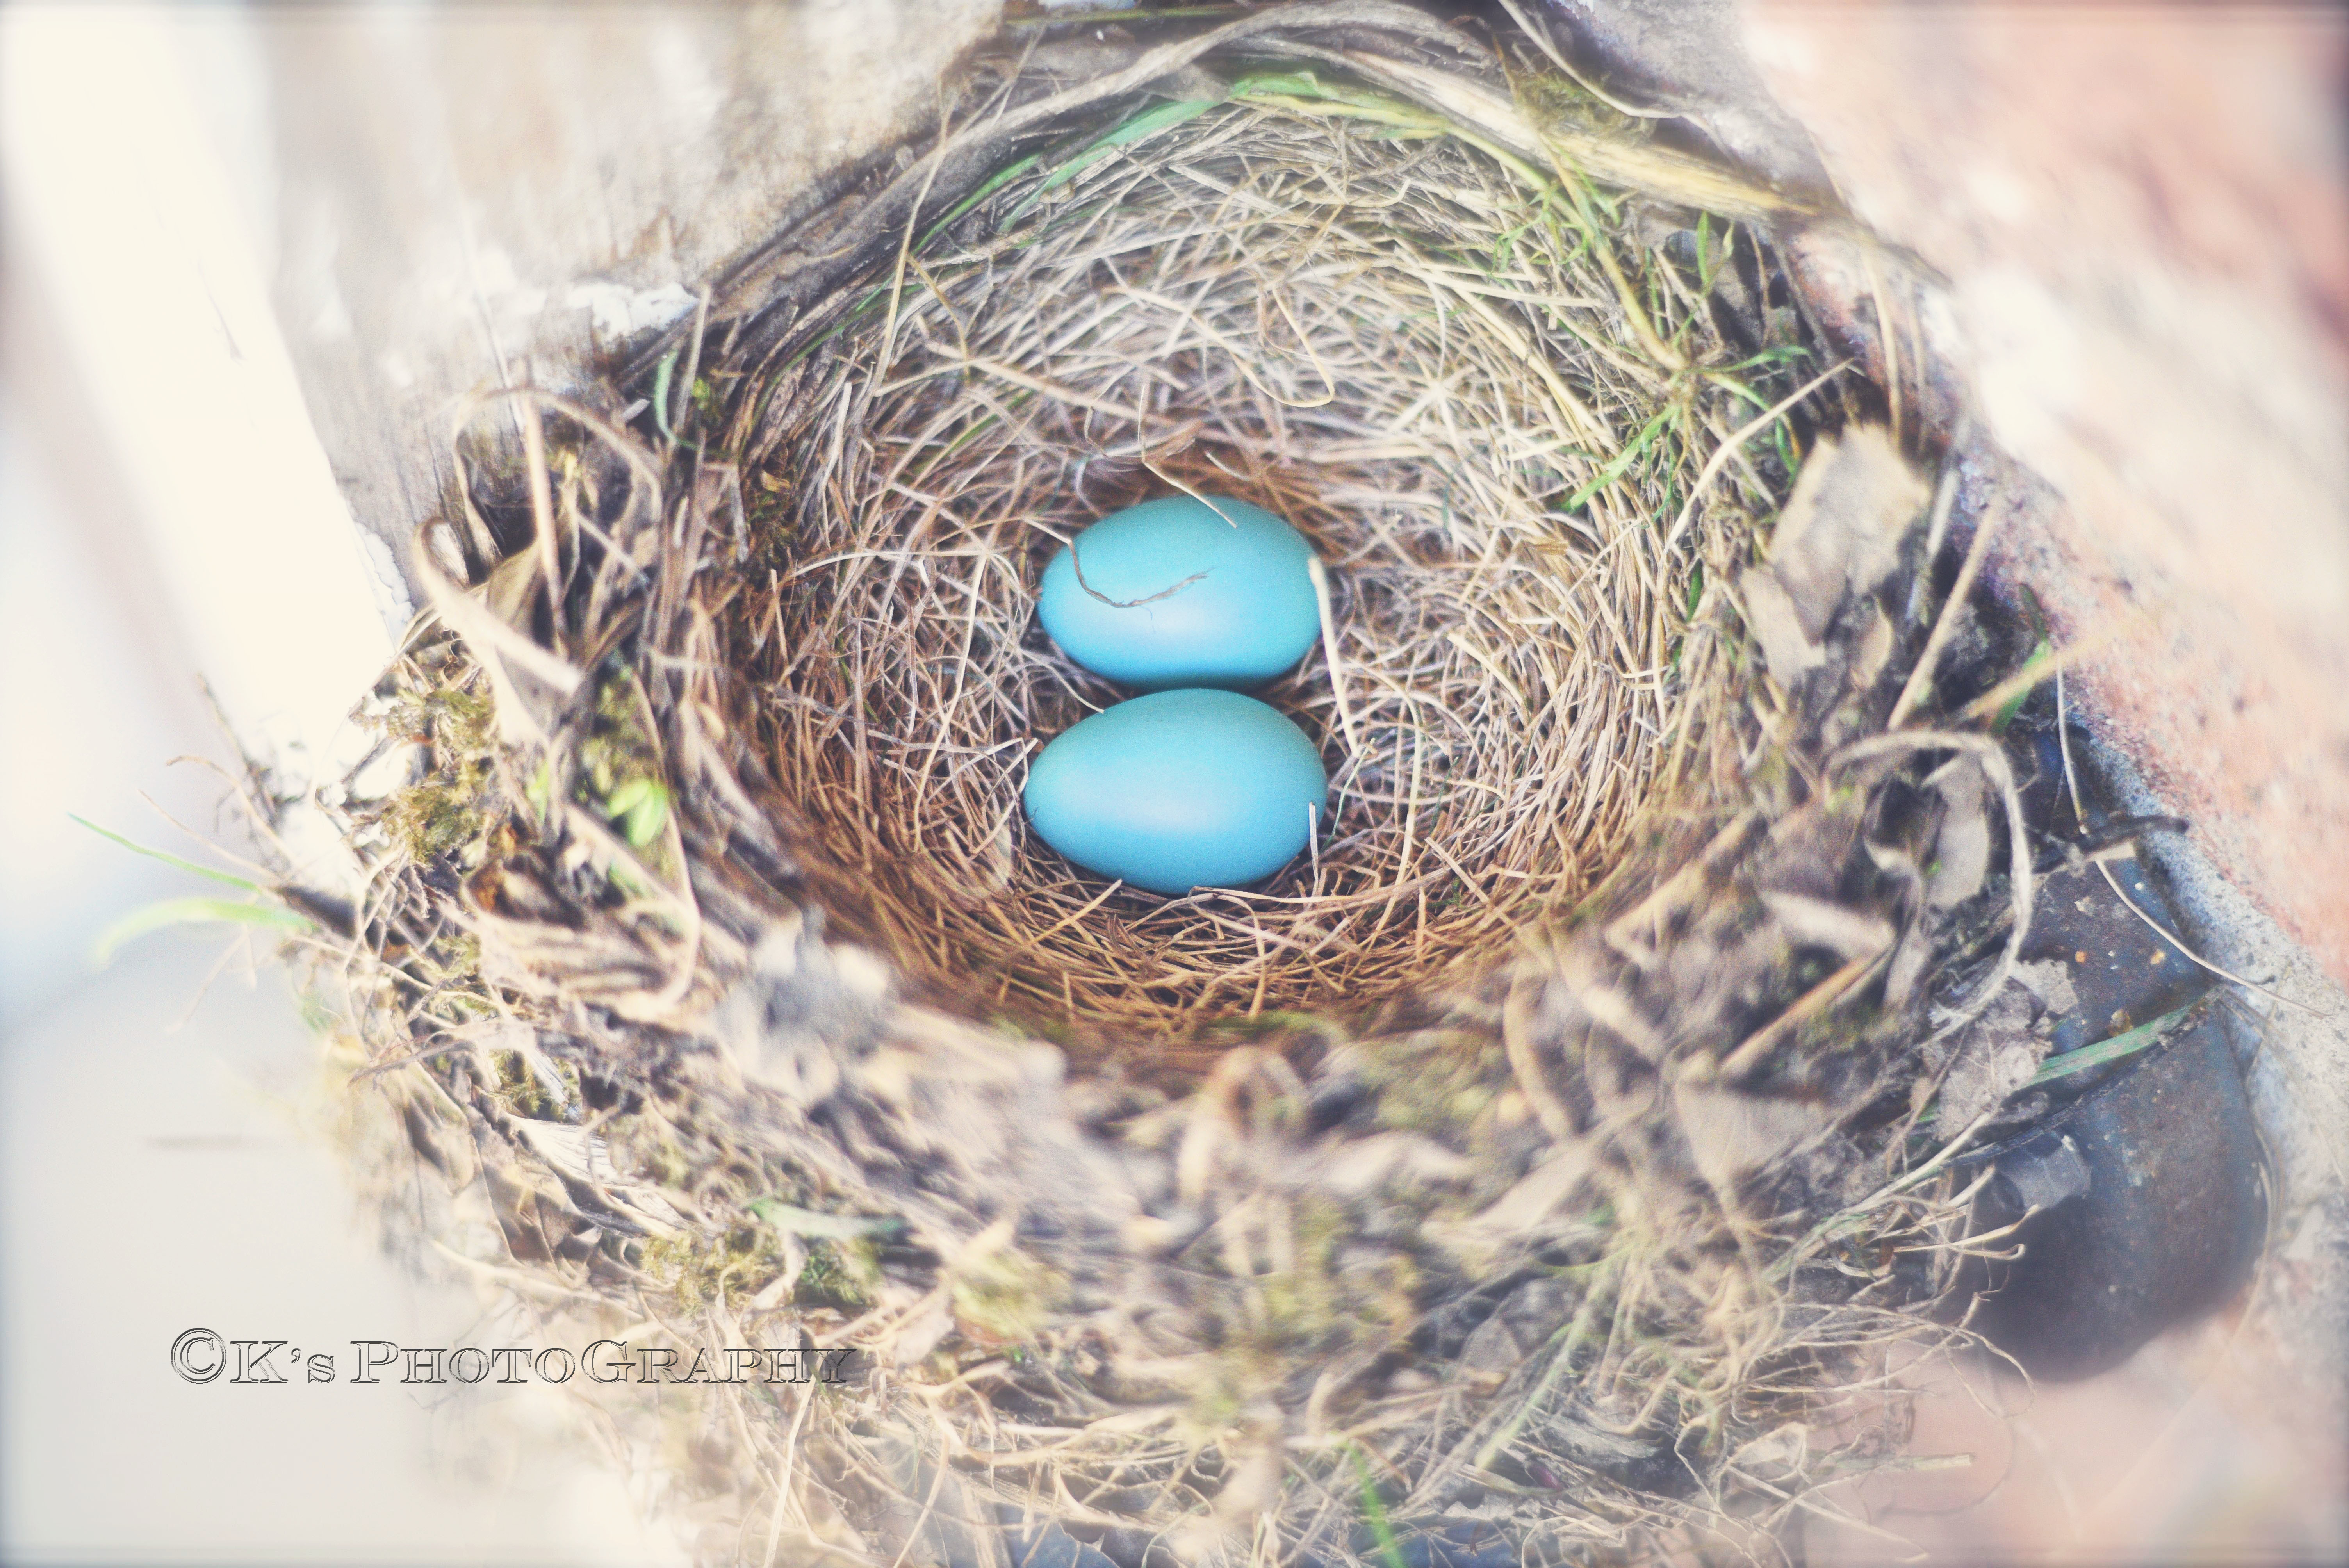 I so love the grace of God found in these little, baby blues. How delightful to see His awesome creation